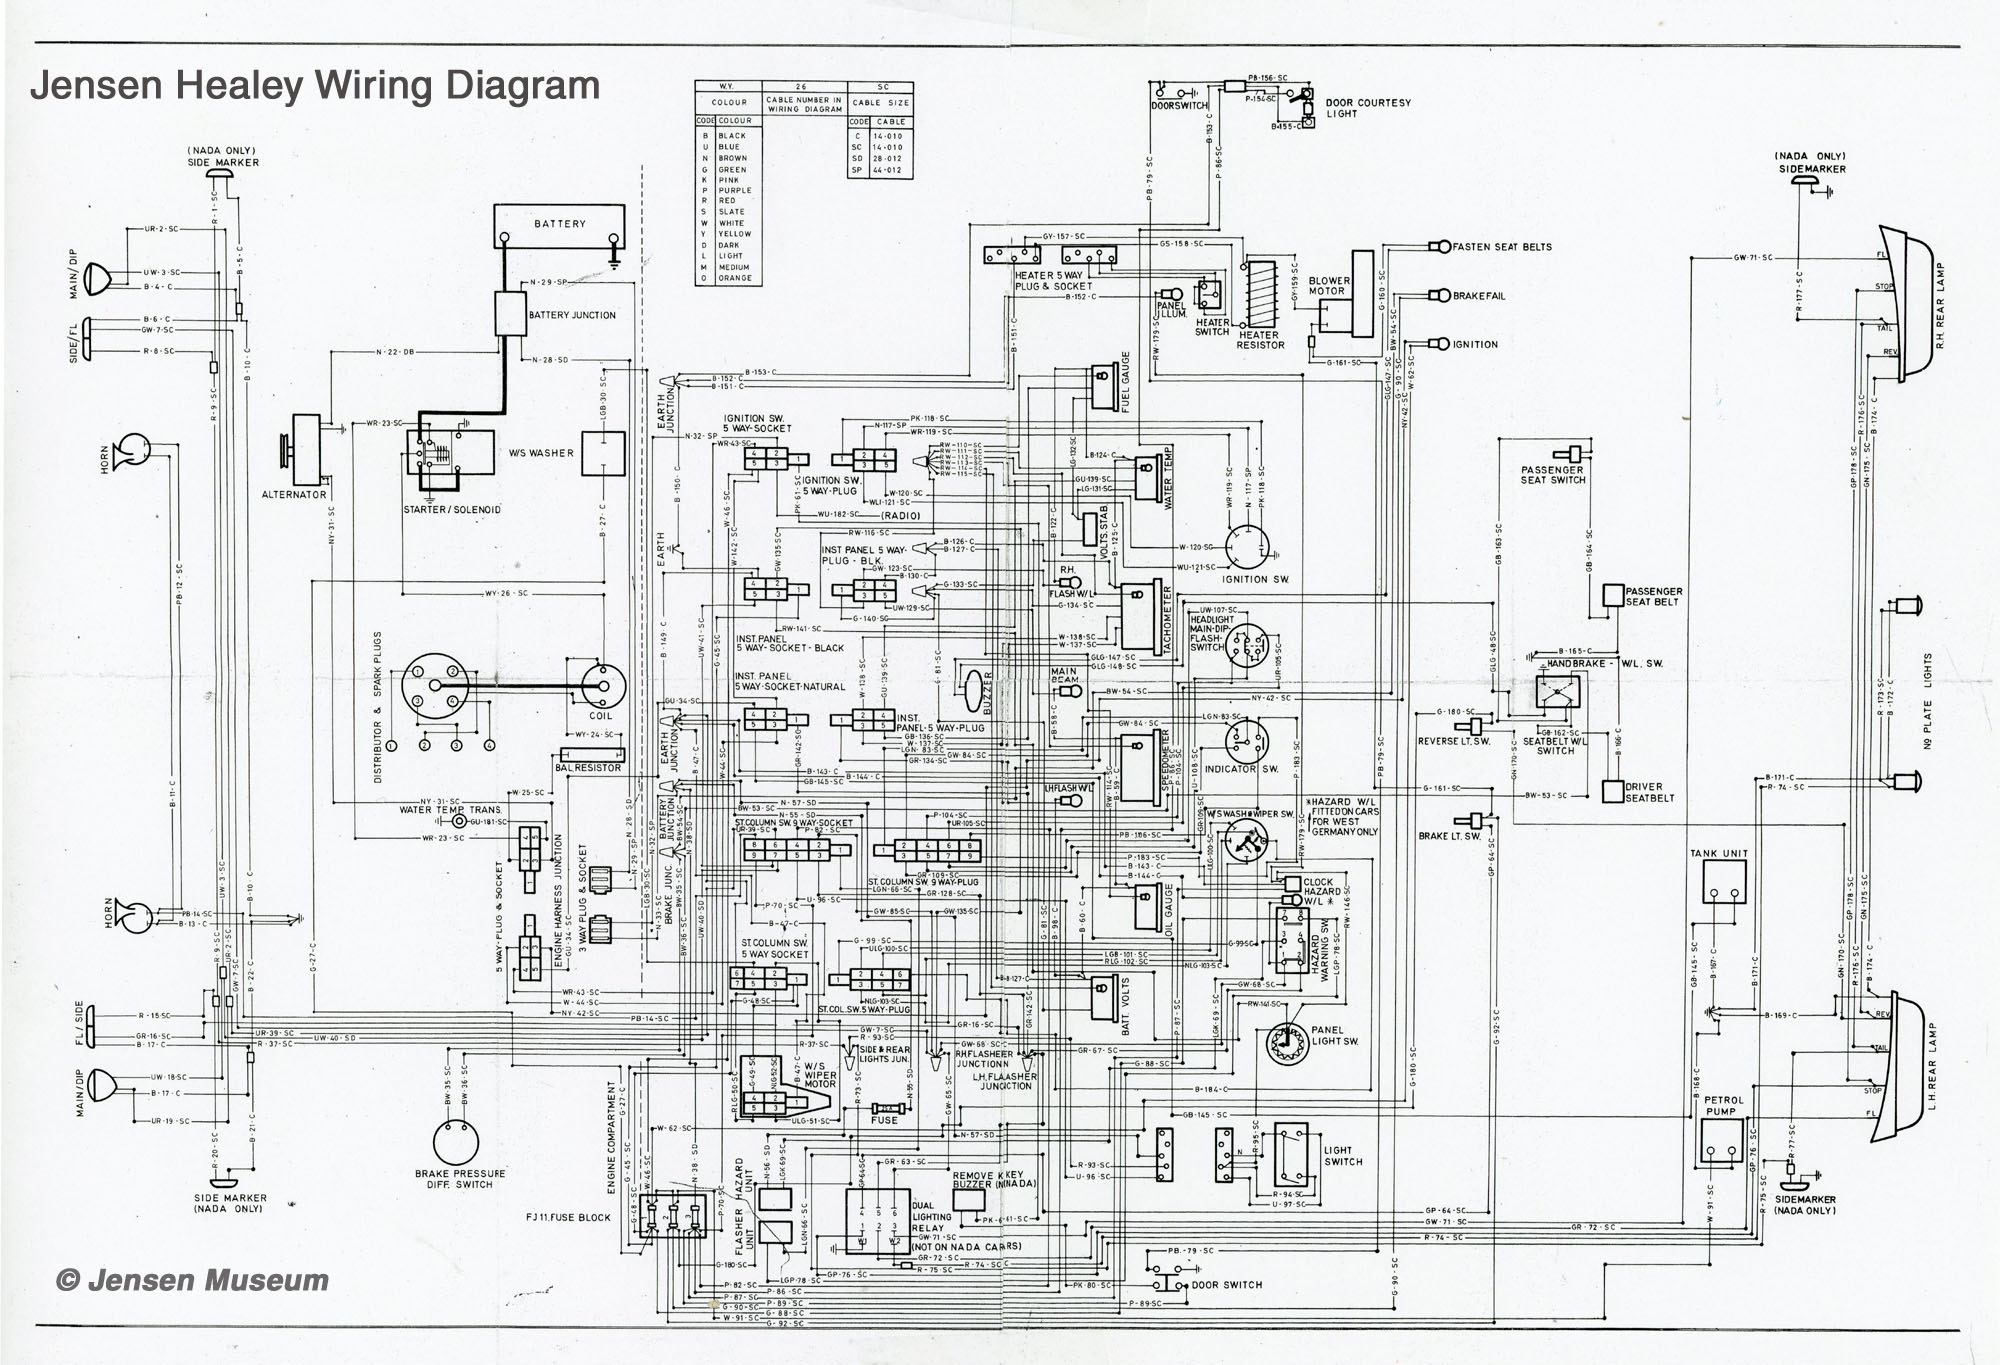 1975 jensen healey wiring diagram am general wiring am general wiring schematic